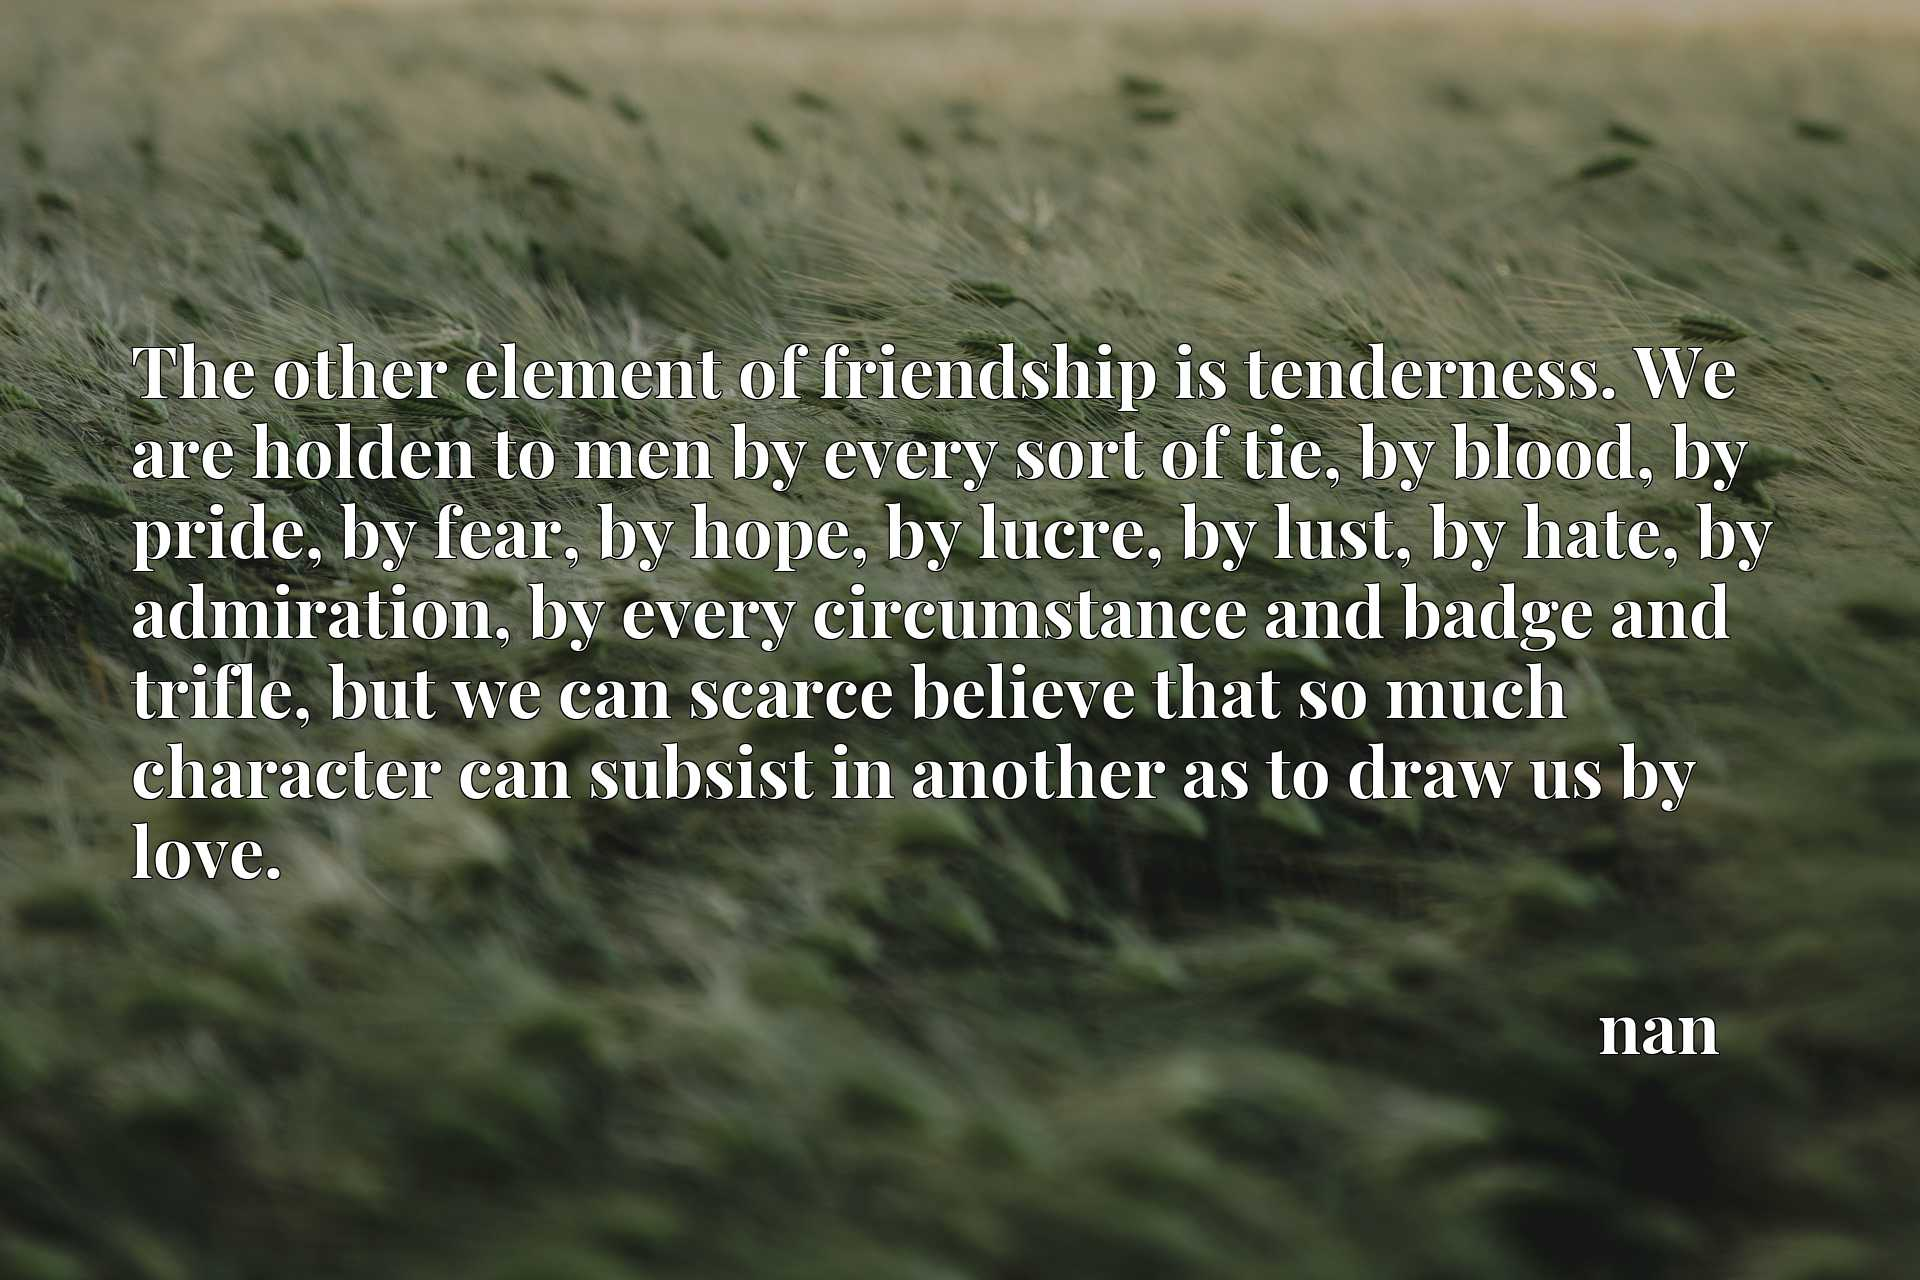 The other element of friendship is tenderness. We are holden to men by every sort of tie, by blood, by pride, by fear, by hope, by lucre, by lust, by hate, by admiration, by every circumstance and badge and trifle, but we can scarce believe that so much character can subsist in another as to draw us by love.